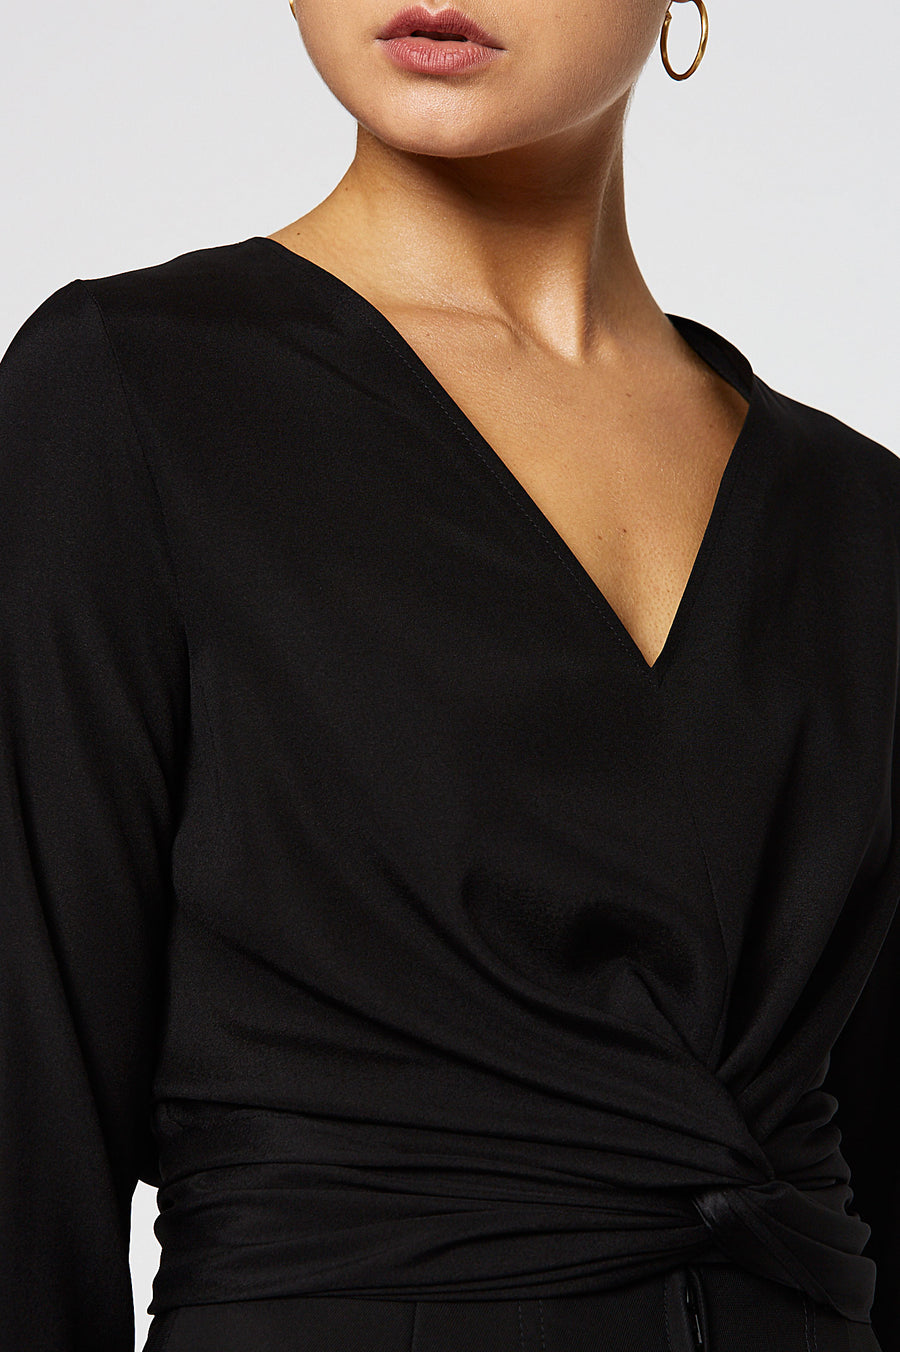 Silk Turban Twist Blouse, cut on the bias, soft drape, v-neck style, long sleeves, front twist detail on waist, color Black